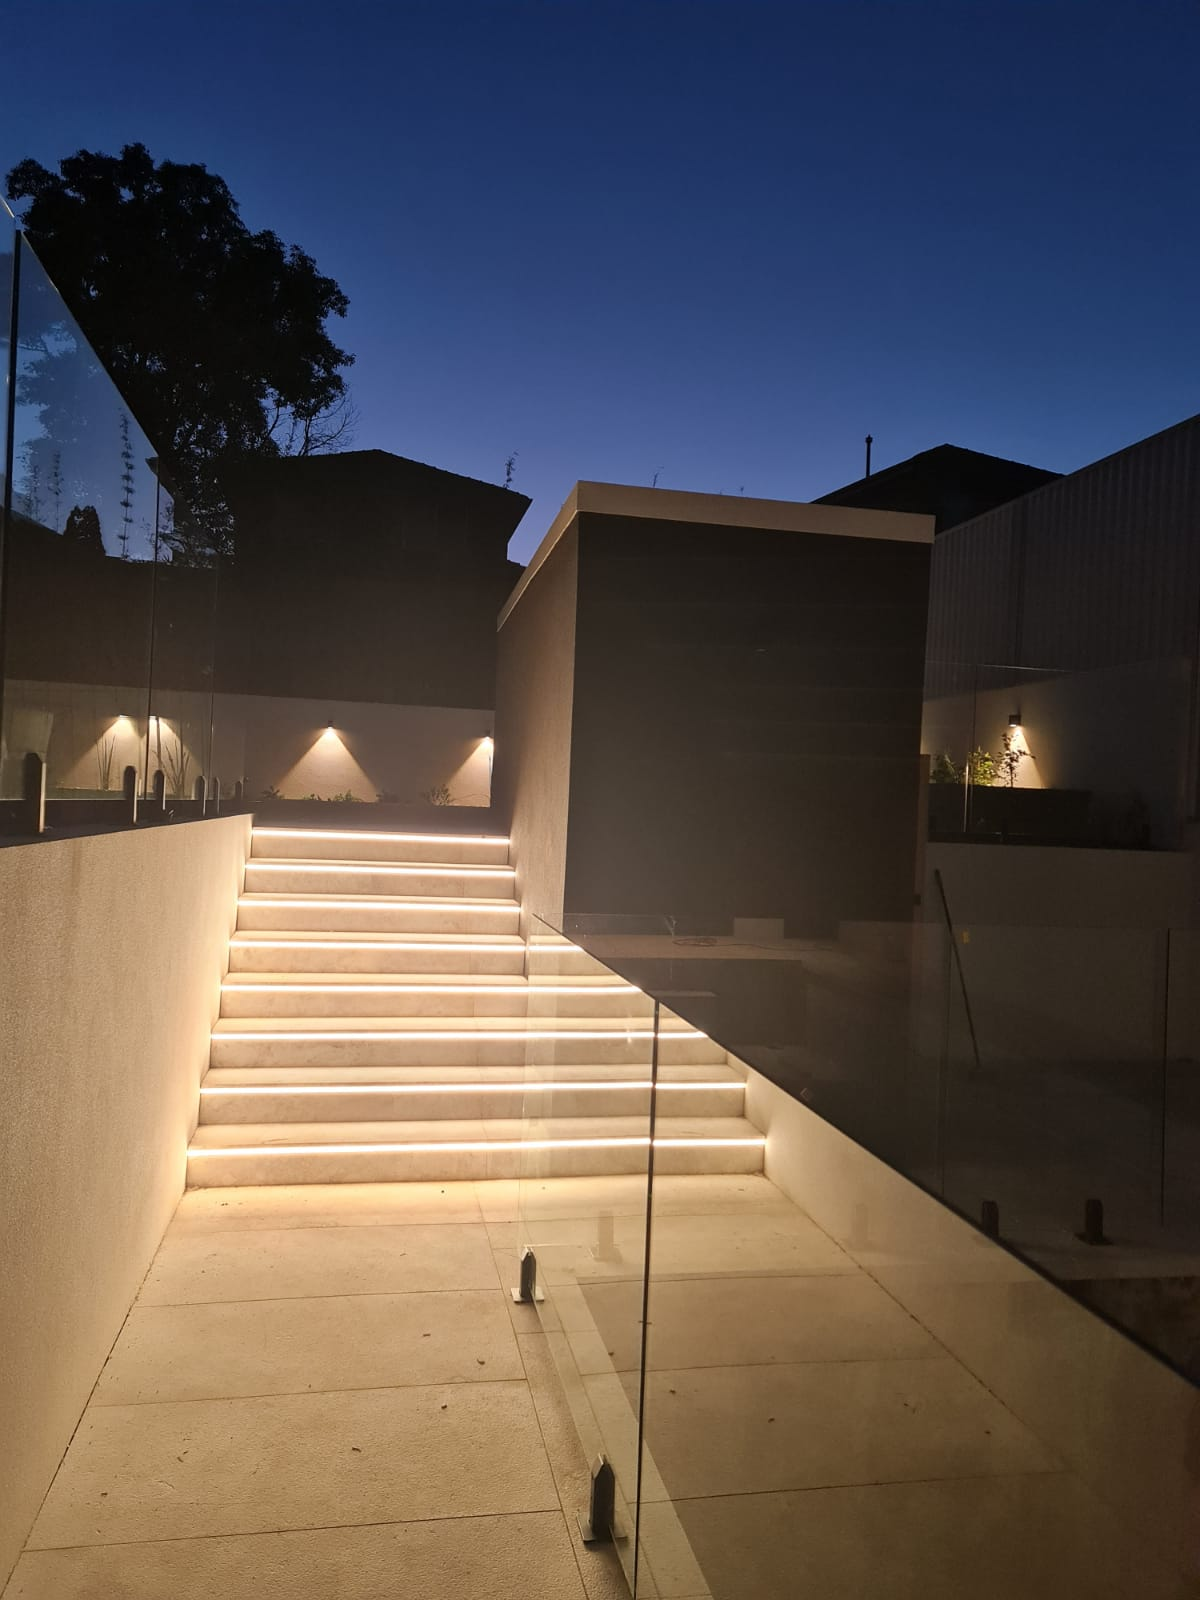 recessed led stair lights electrician installing recessed strip stair lights outdoor and indoor linear lighting installer electrician near me